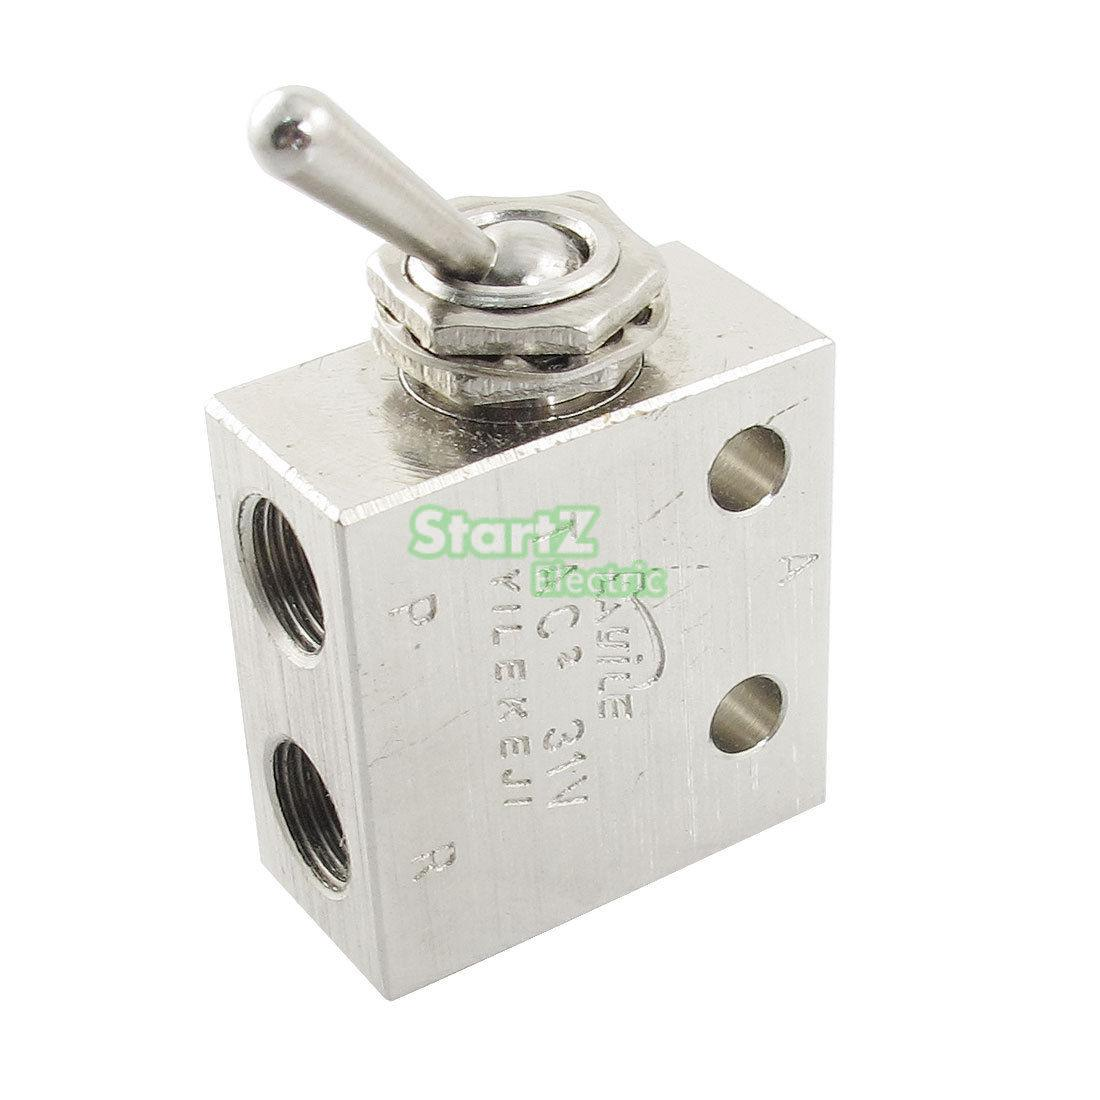 1/8PT Thread 2 Position 3 Way Rectangle Mechanical Air Pneumatic Valve TAC2-31V 3 8 pneumatic one way design air flow control valve re 03